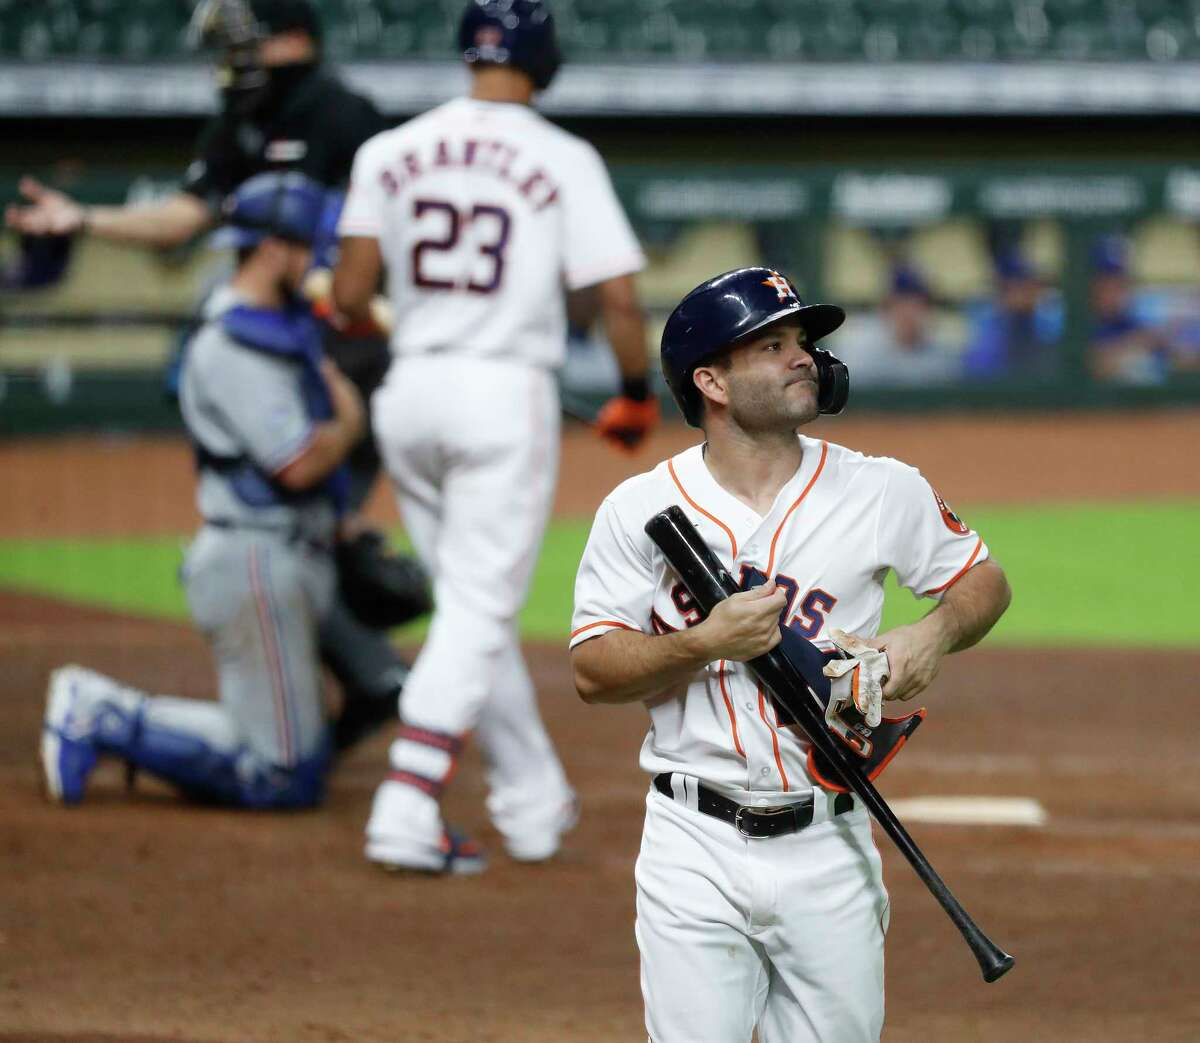 Houston Astros Jose Altuve (27) reacts after striking out during the ninth inning of an MLB baseball game at Minute Maid Park, Wednesday, September 16, 2020, in Houston.